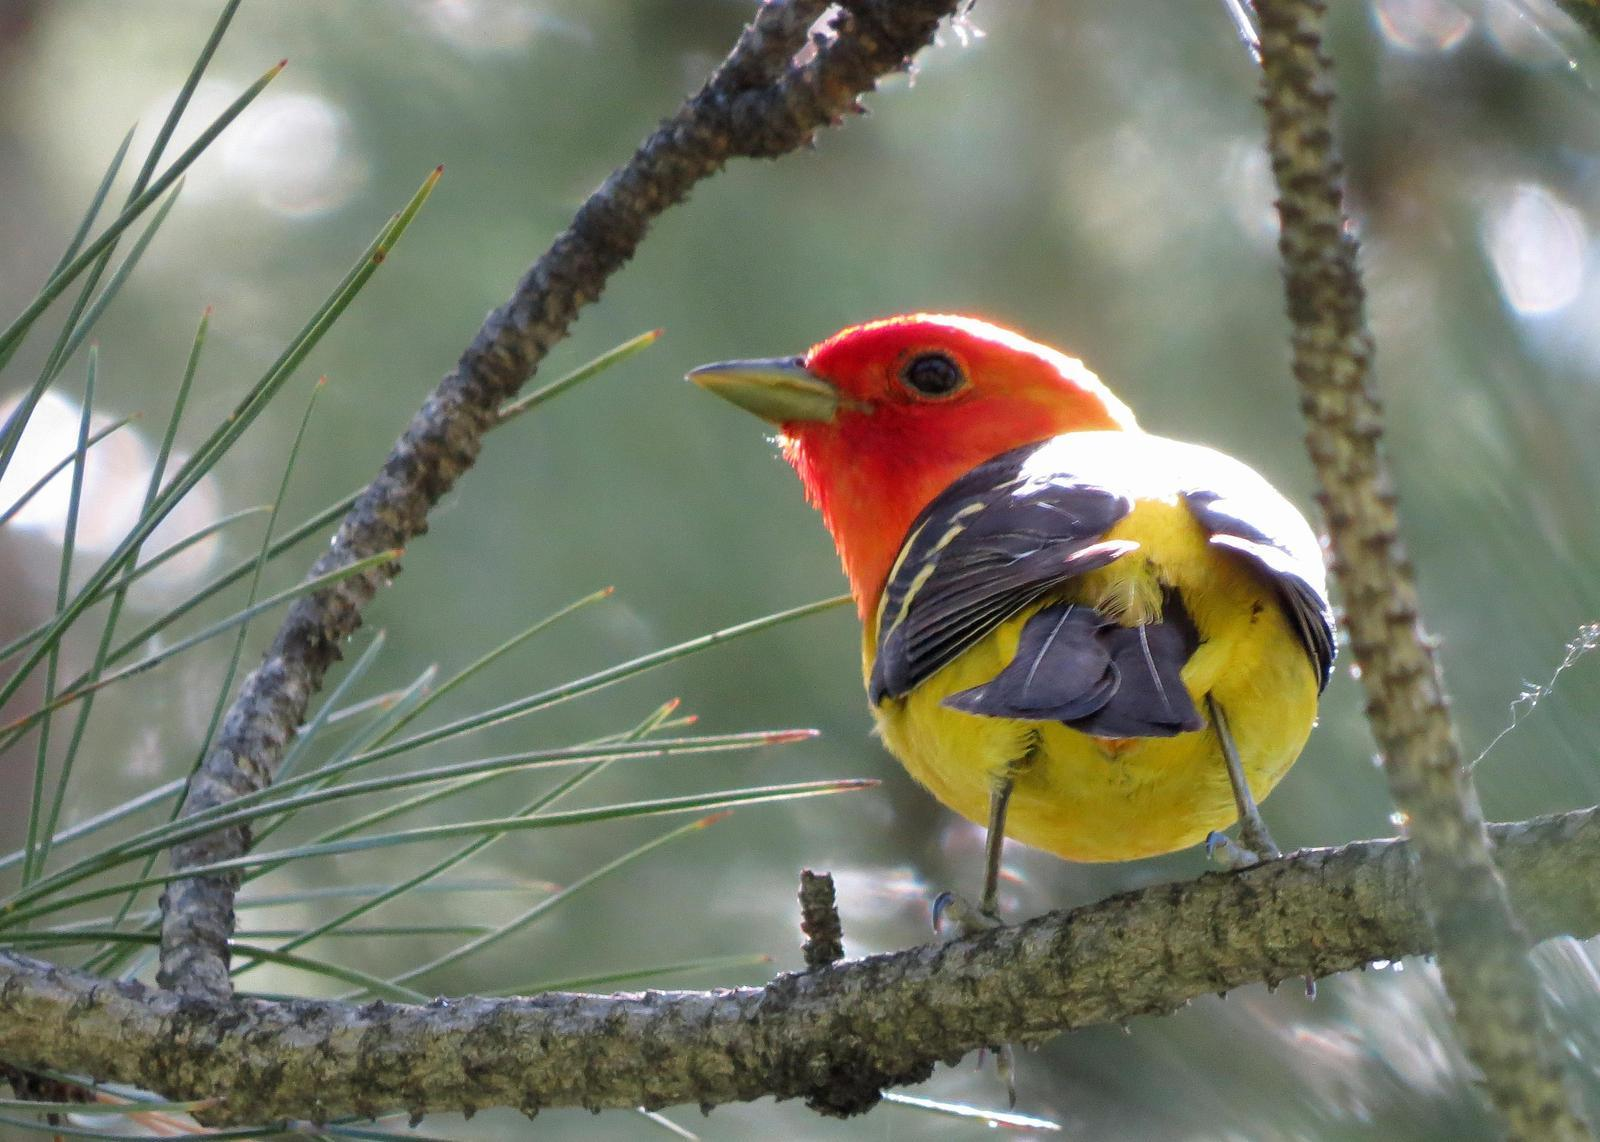 Western Tanager Photo by Kelly Preheim